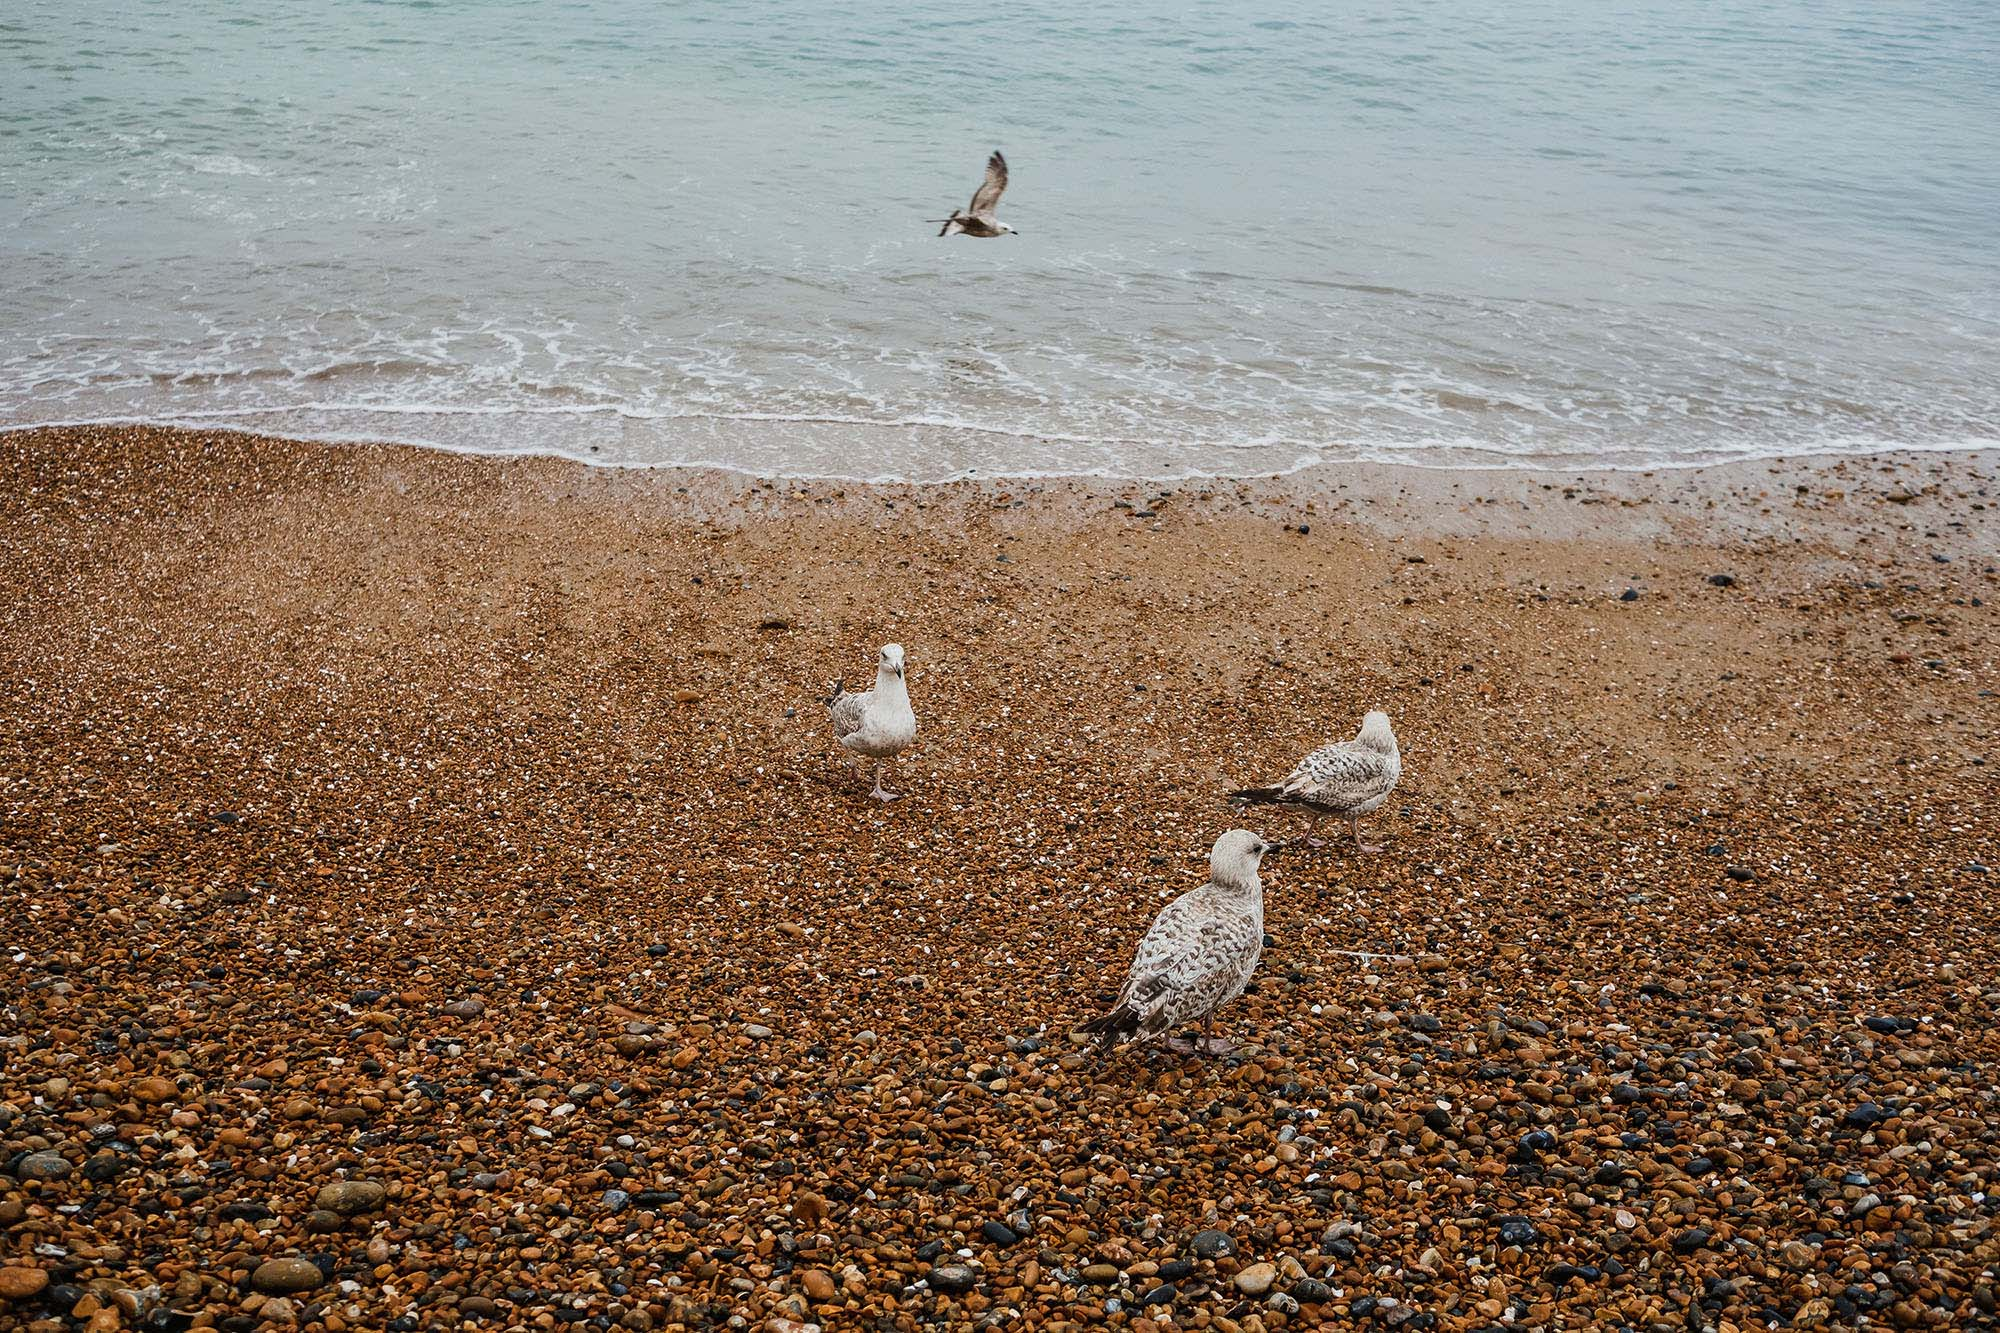 24 hours of photos in Brighton